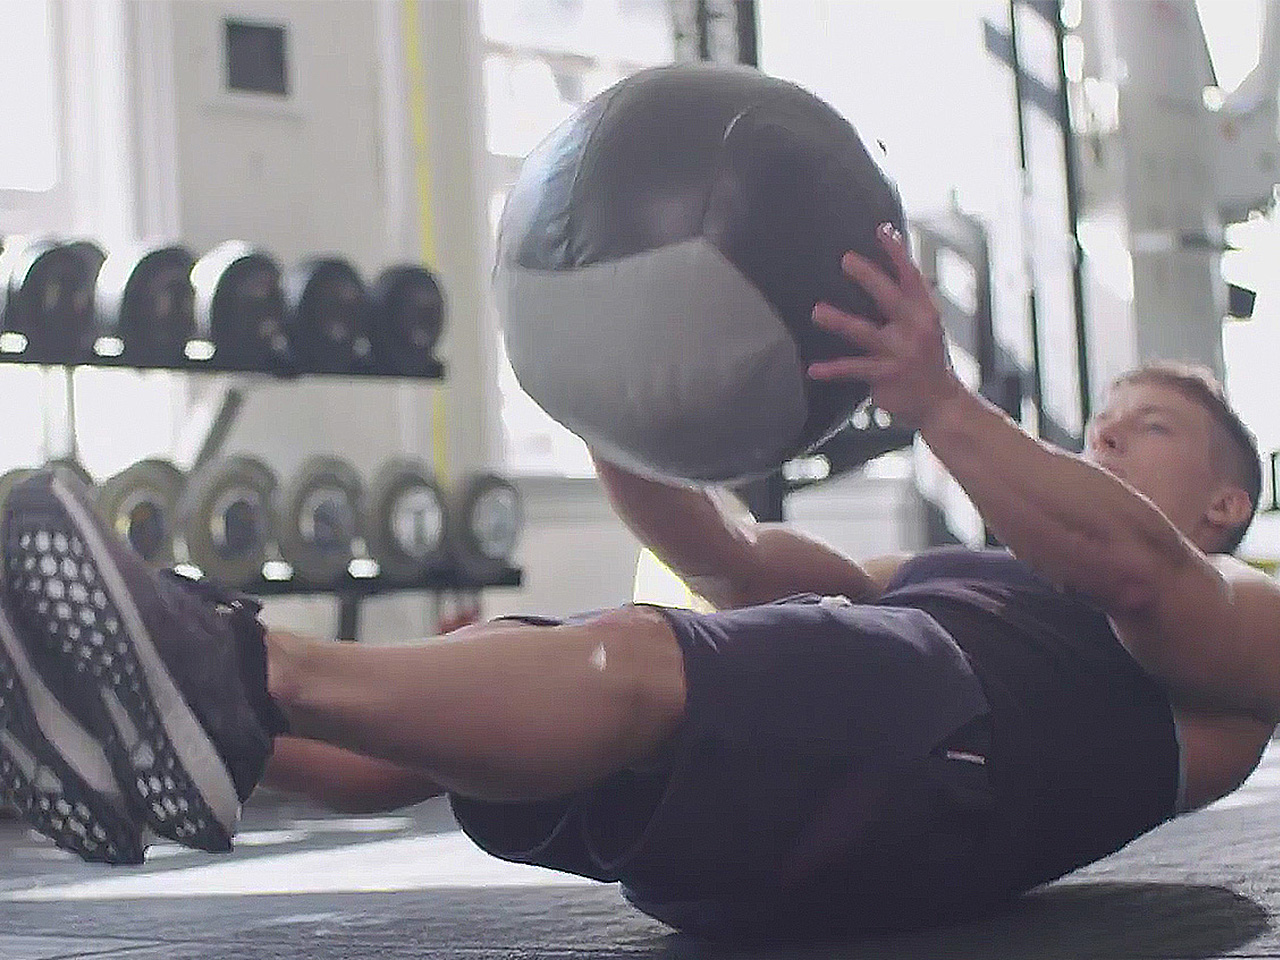 CrossFit-Inspired Challenges: The core-crushing fitness test